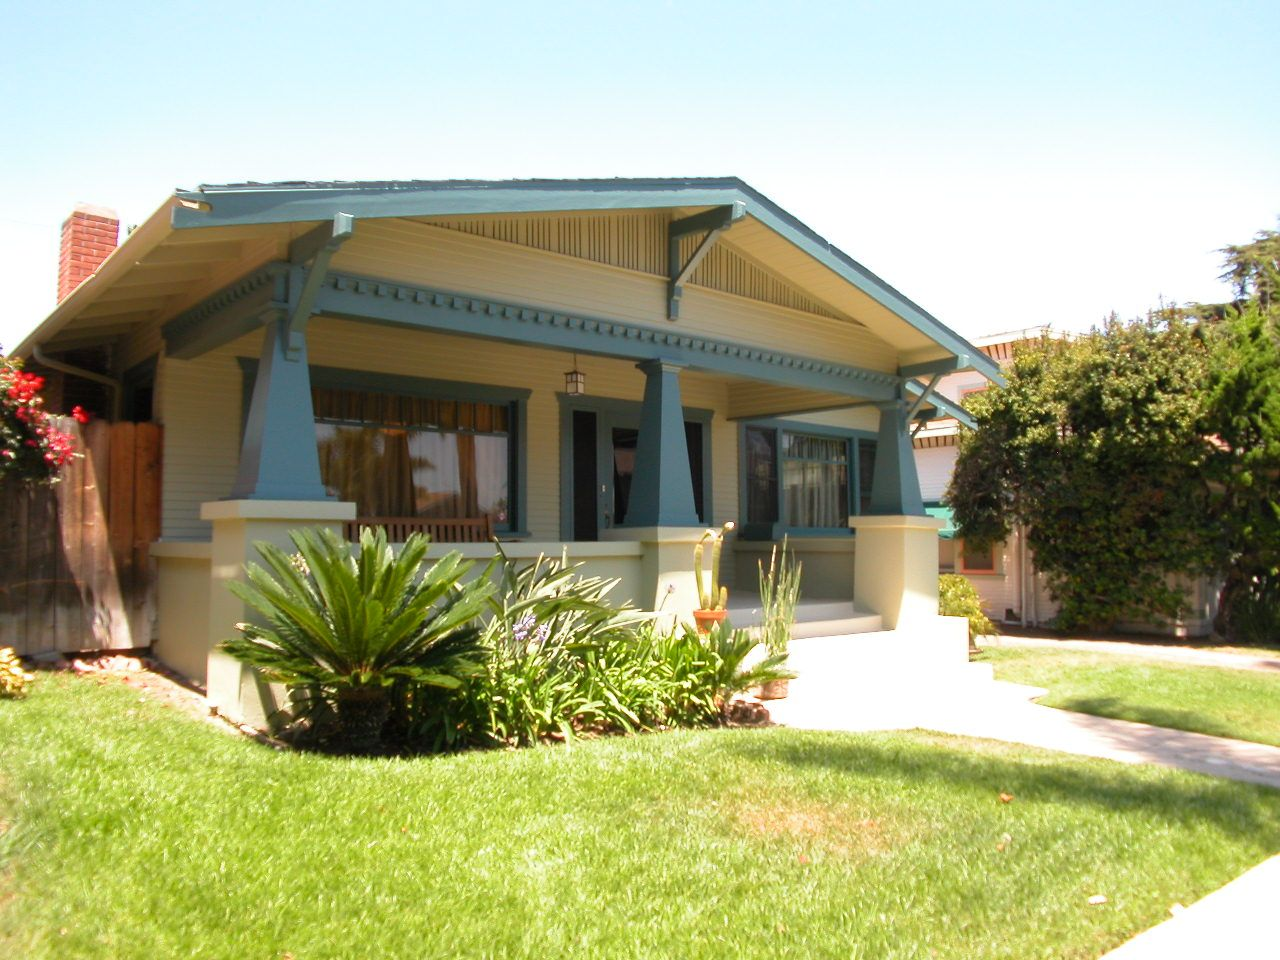 Bungalow style homes bungalow american bungalow for California bungalow house